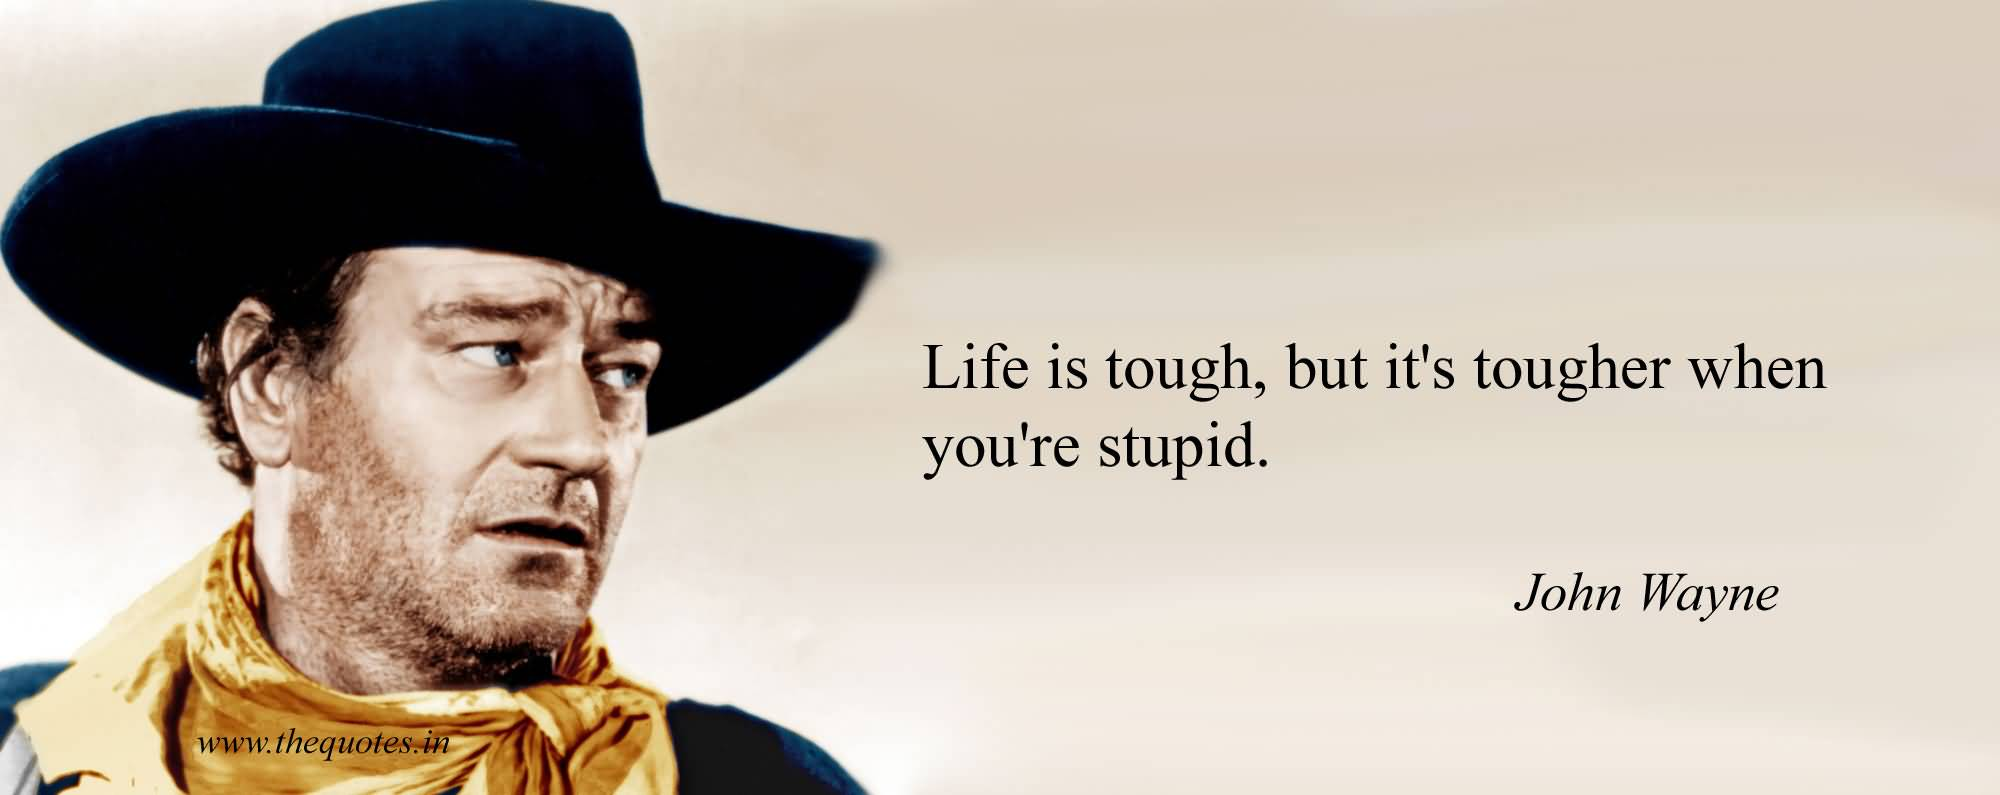 Hard Life Quotes - We Need Fun |Life Is Hard But Quotes